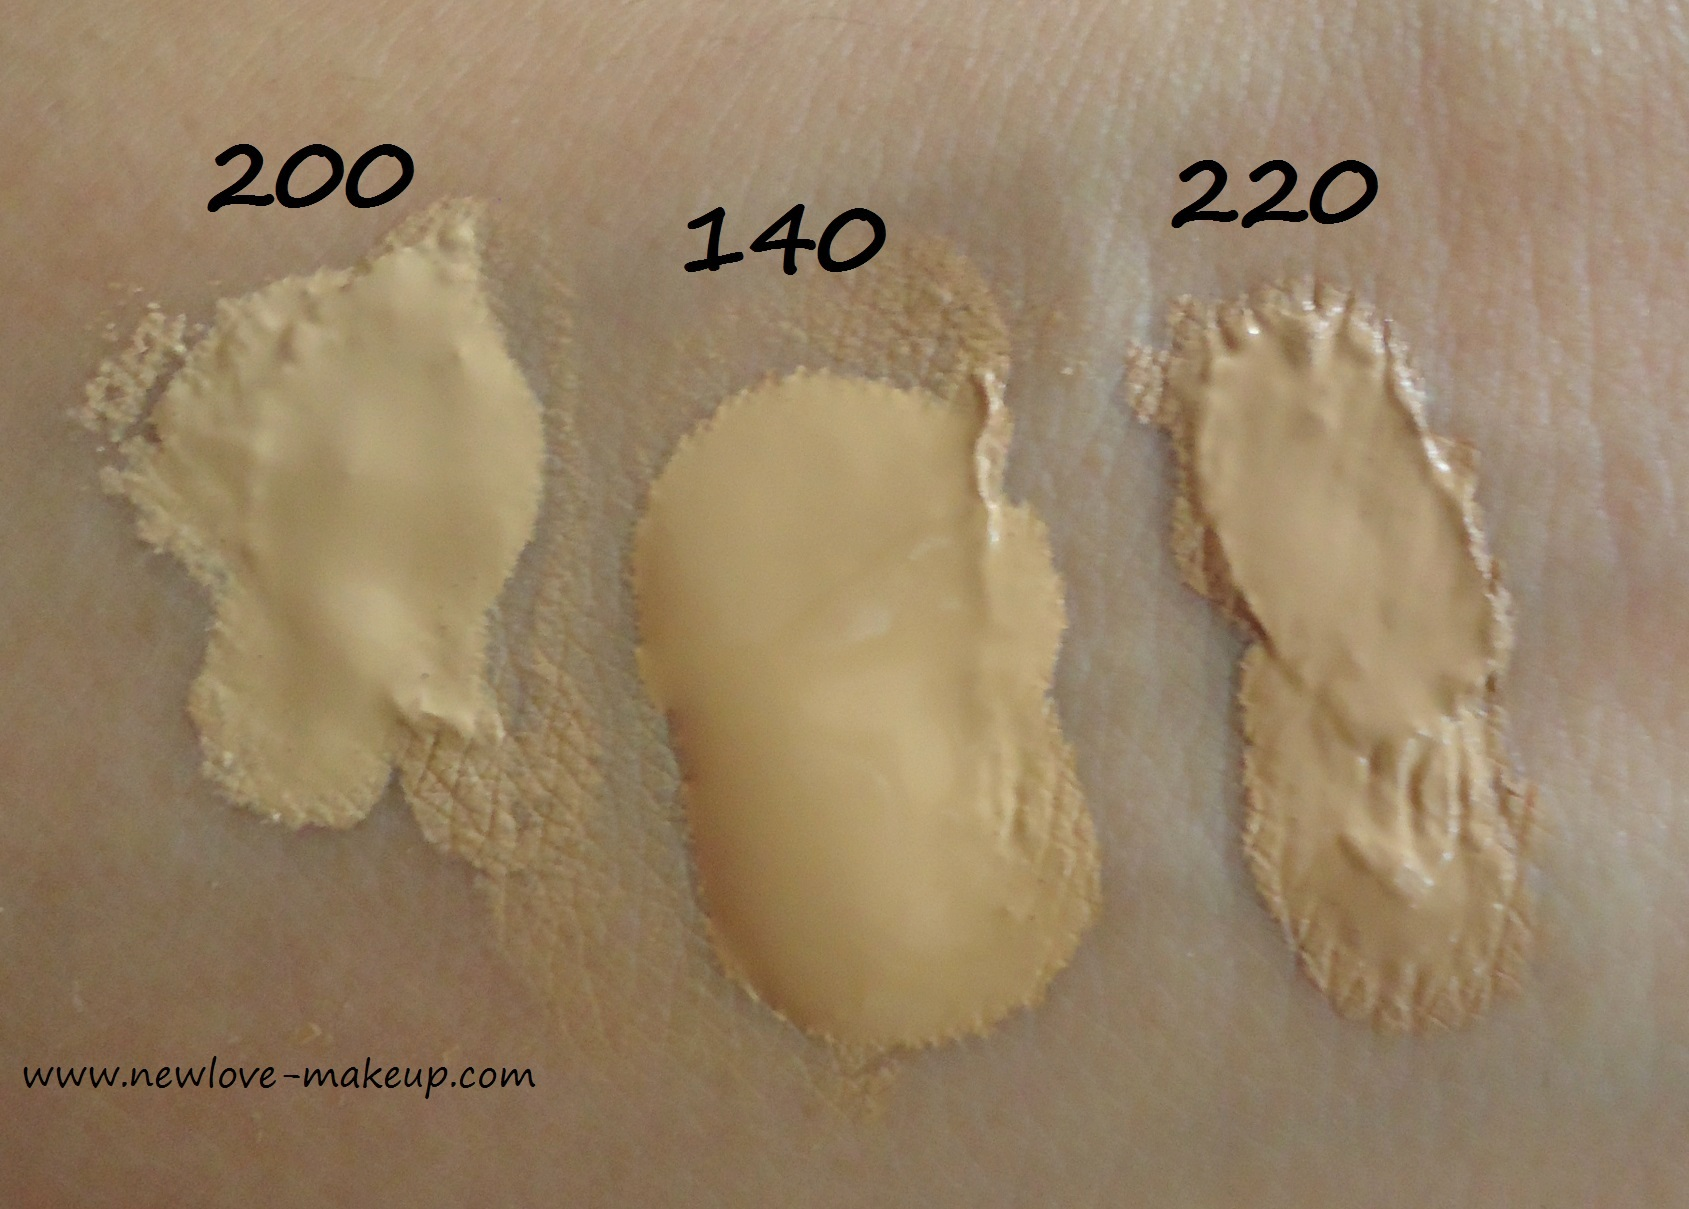 how to choose foundation shade for wheatish skin